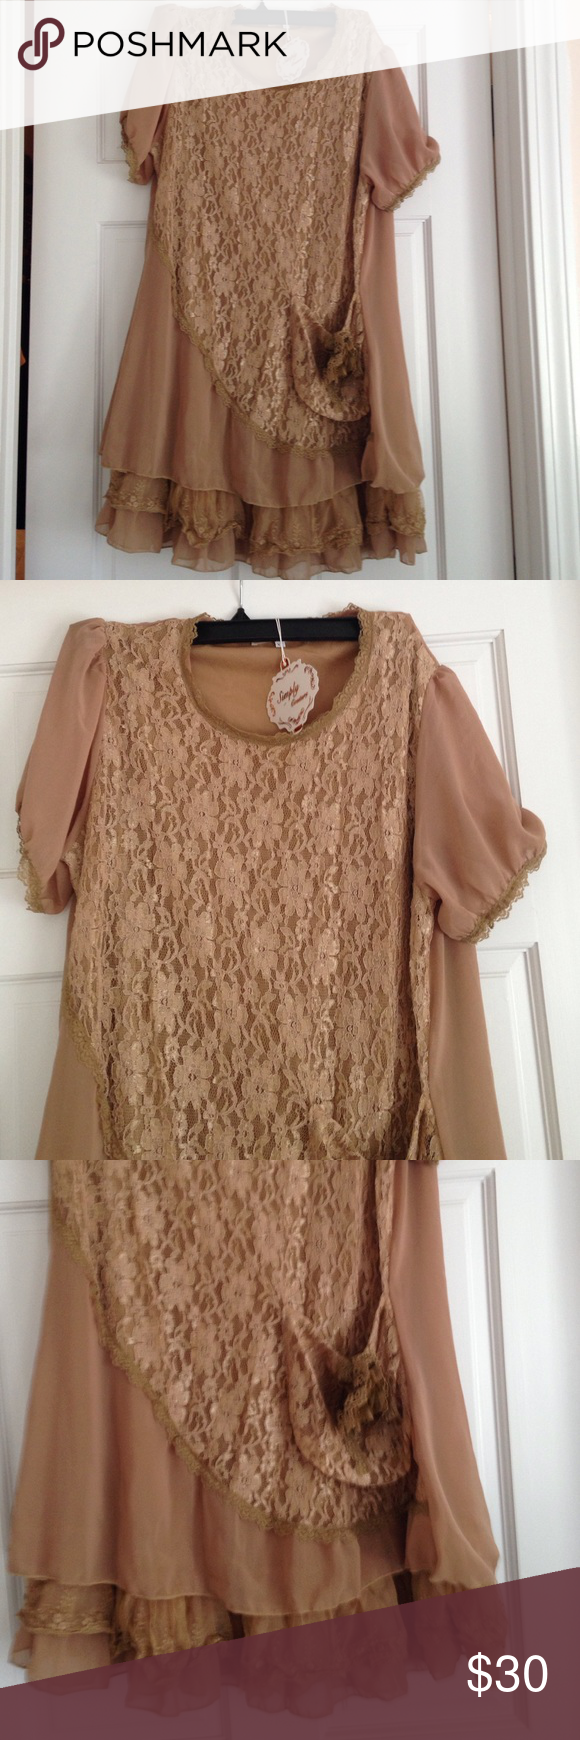 Tunic top with pocket Pretty chiffon and all over lace fully lined has front pocket nwt Simply couture Tops Tunics